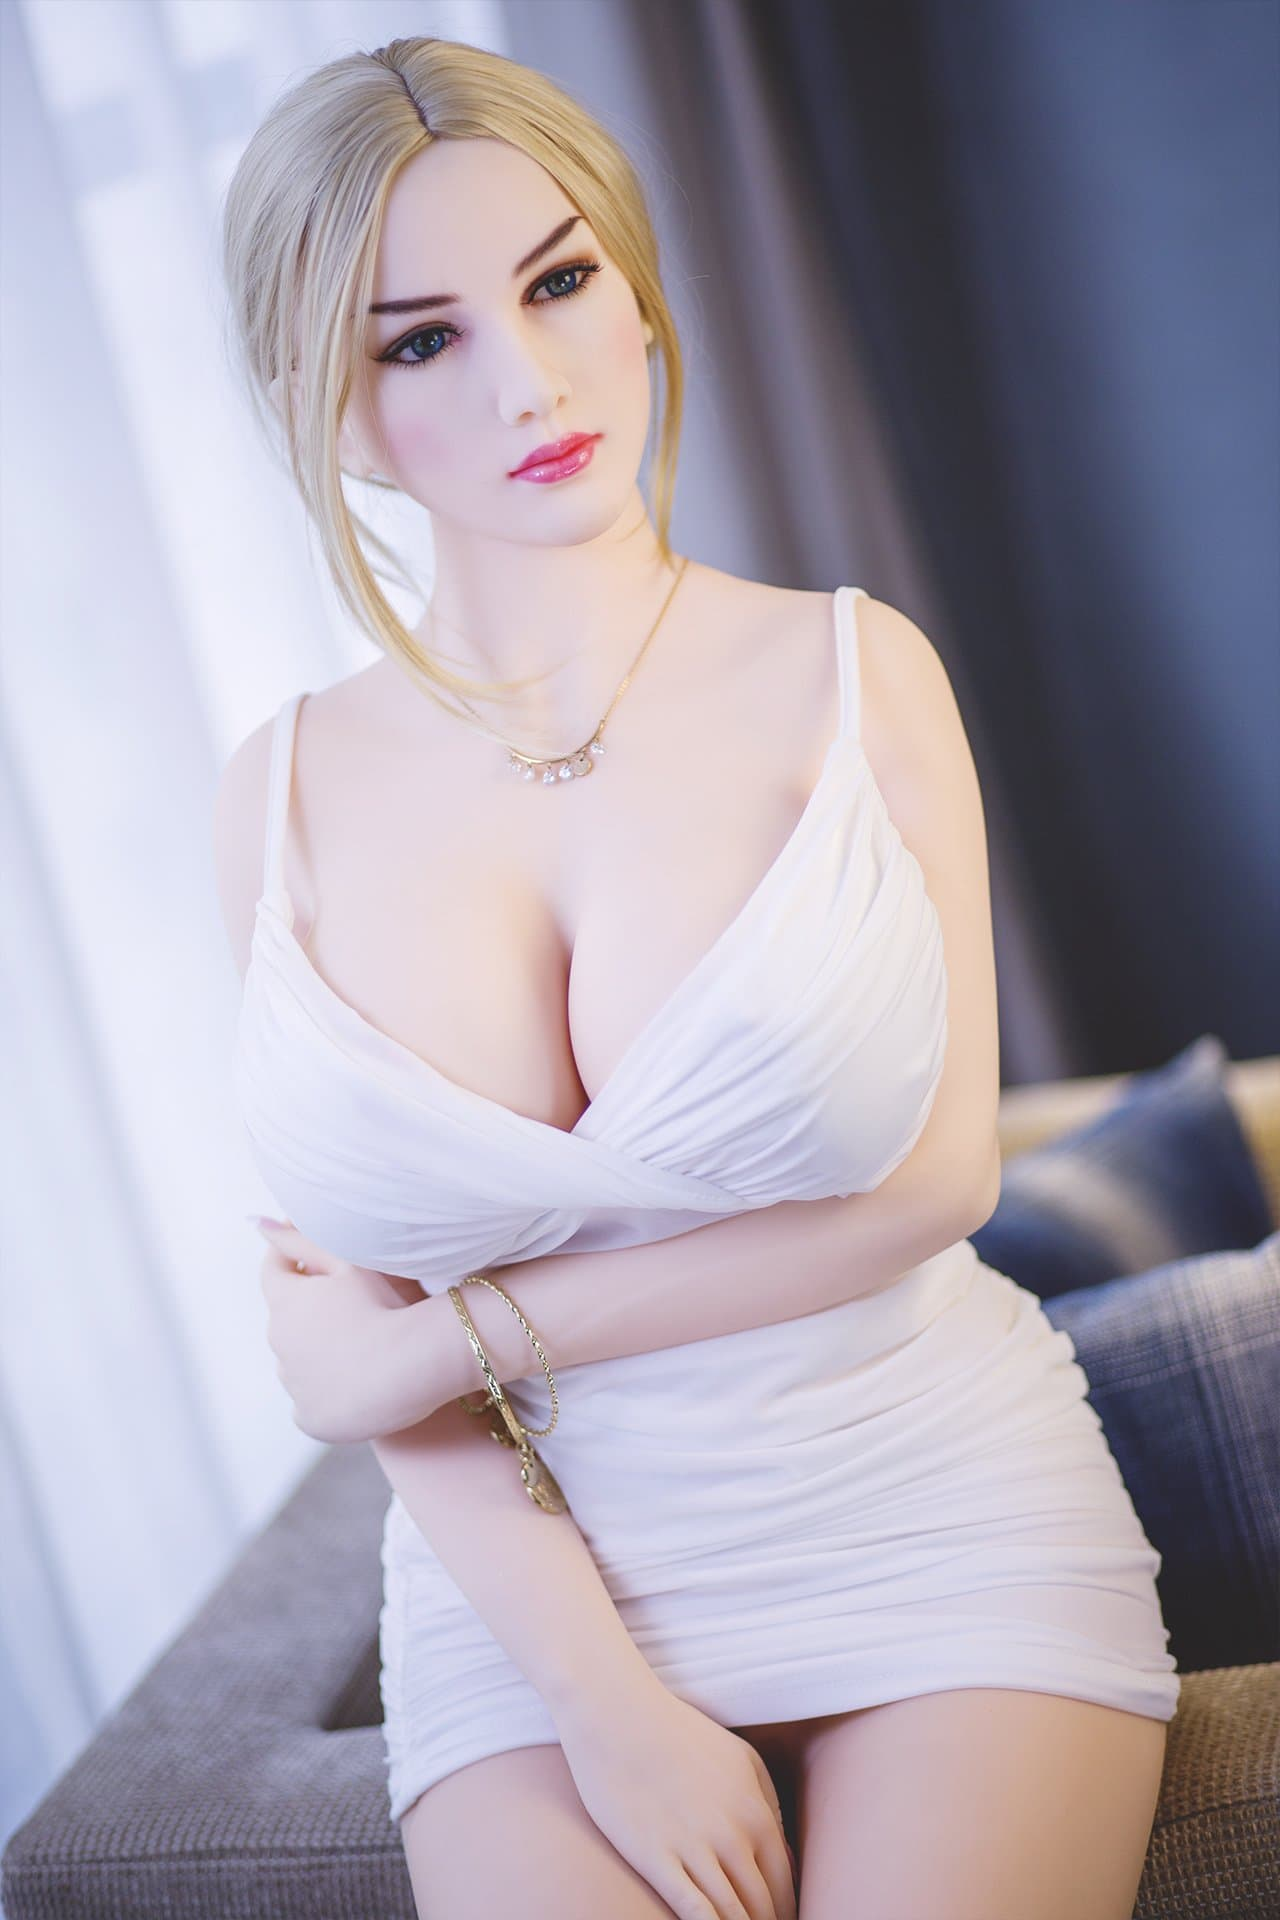 suki 163cm blonde jy big boobs skinny tpe sex doll(7)